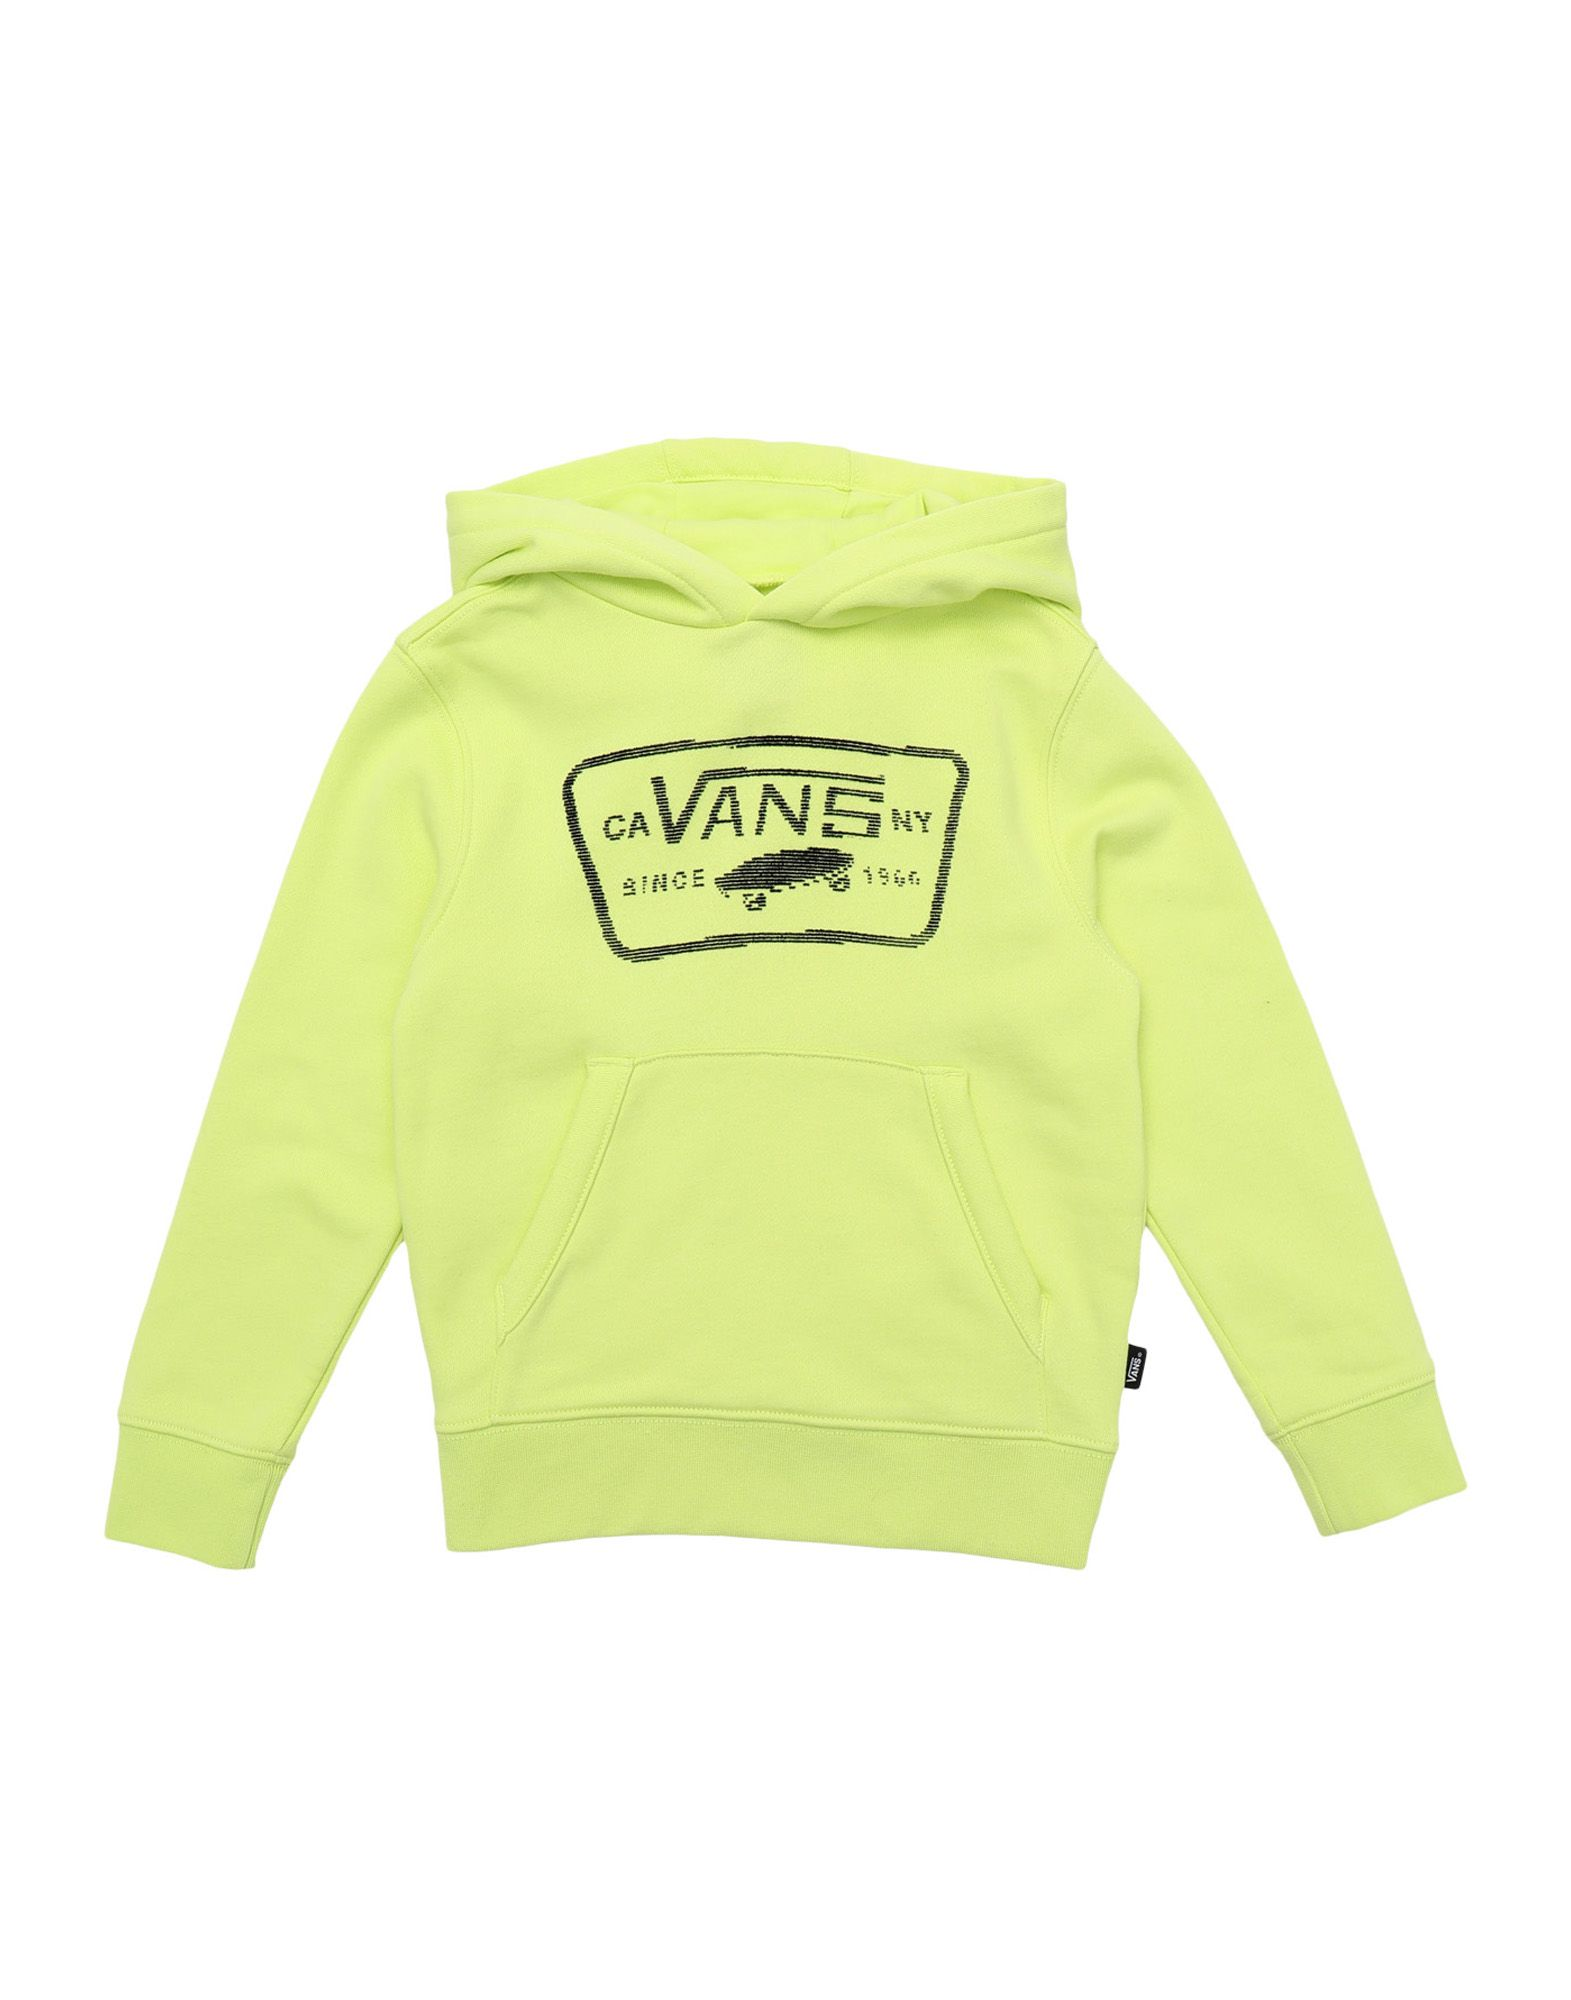 046743e311 Sweaters And Sweatshirts Vans Boy 3-8 years - childrenswear at YOOX